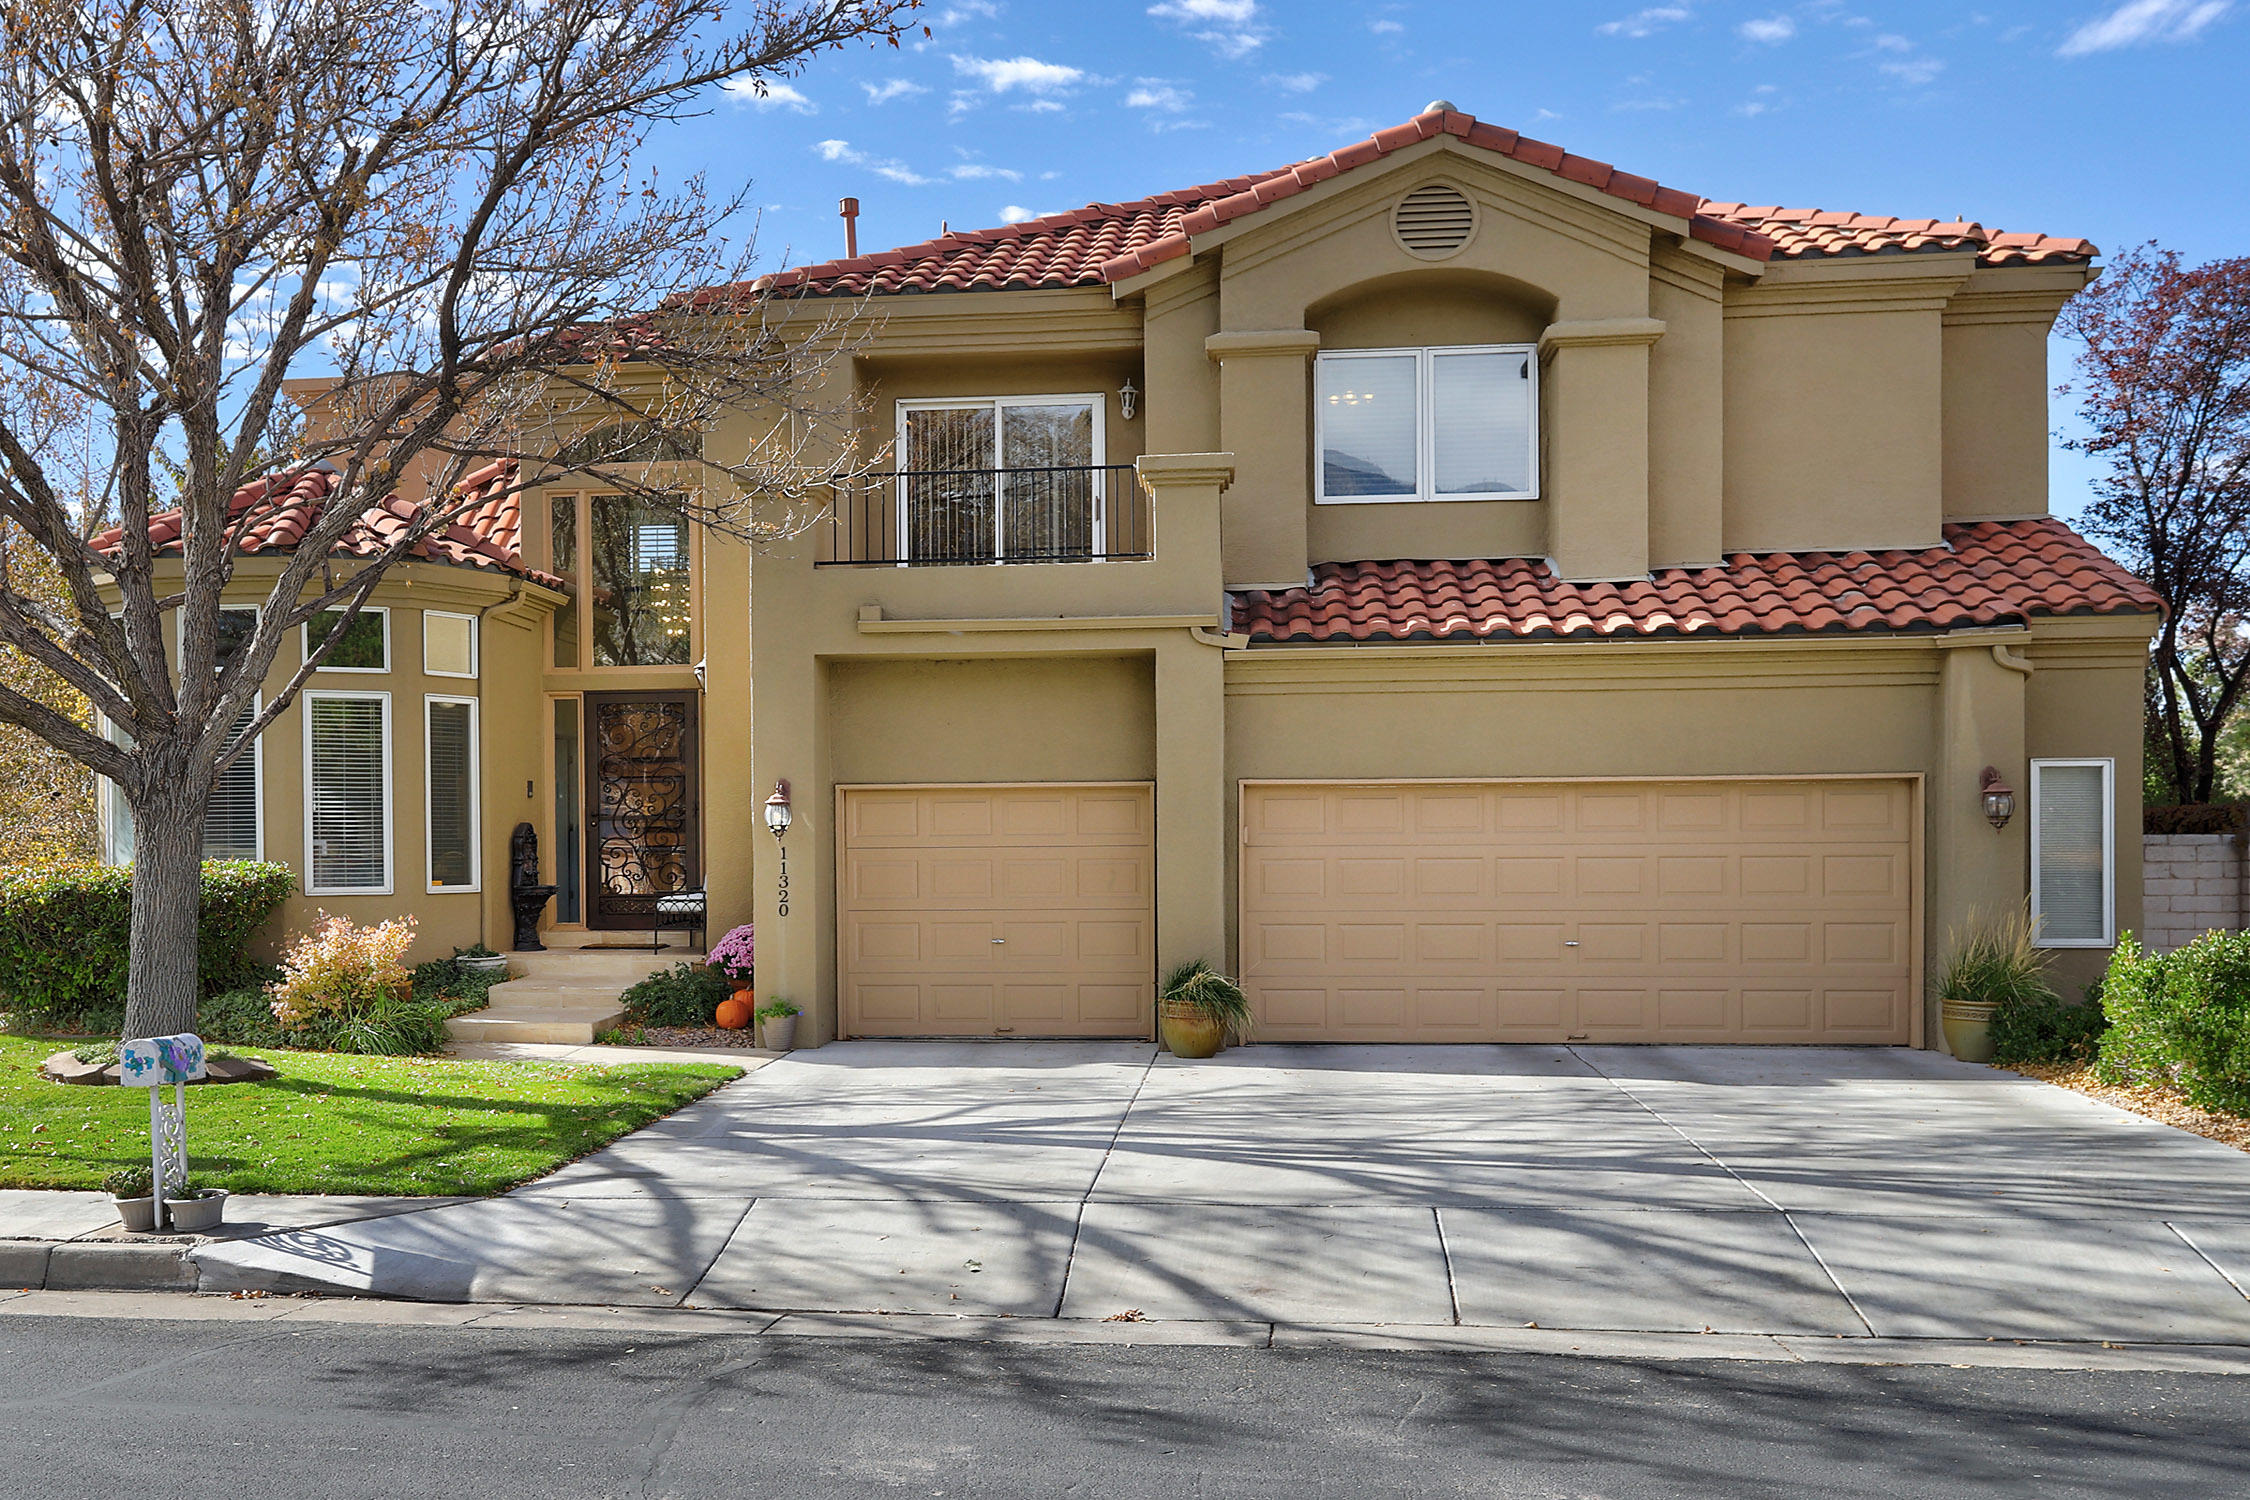 Stunning condition butting up to Sandia Hole #9.  Premier condition throughout with 3 wonderful living spaces.  5/6 bedrooms & a Backyard private Oasis complete with heated, gunite pool w/auto cover & inground hot tub under a beautiful Gazebo.  Even your own basketball court.  The finished basement offers a recreation room w/pool table, wet bar, bedroom  + office or play room & 3/4 bath.  Everything in this home is in pristine -- beautiful engineered wood floors, travertine tile & H20 Heaters replaced in 2019 & 2020.  3 brand new high efficiency furnaces. Tile section of  roof replaced/serviced in 2020.  New pool pump, automatic pool box & motors, & new spa cover 2019, newer TrekDeck & newer granite throughout. This home has a very livable flowing floor plan with tons of natural light.